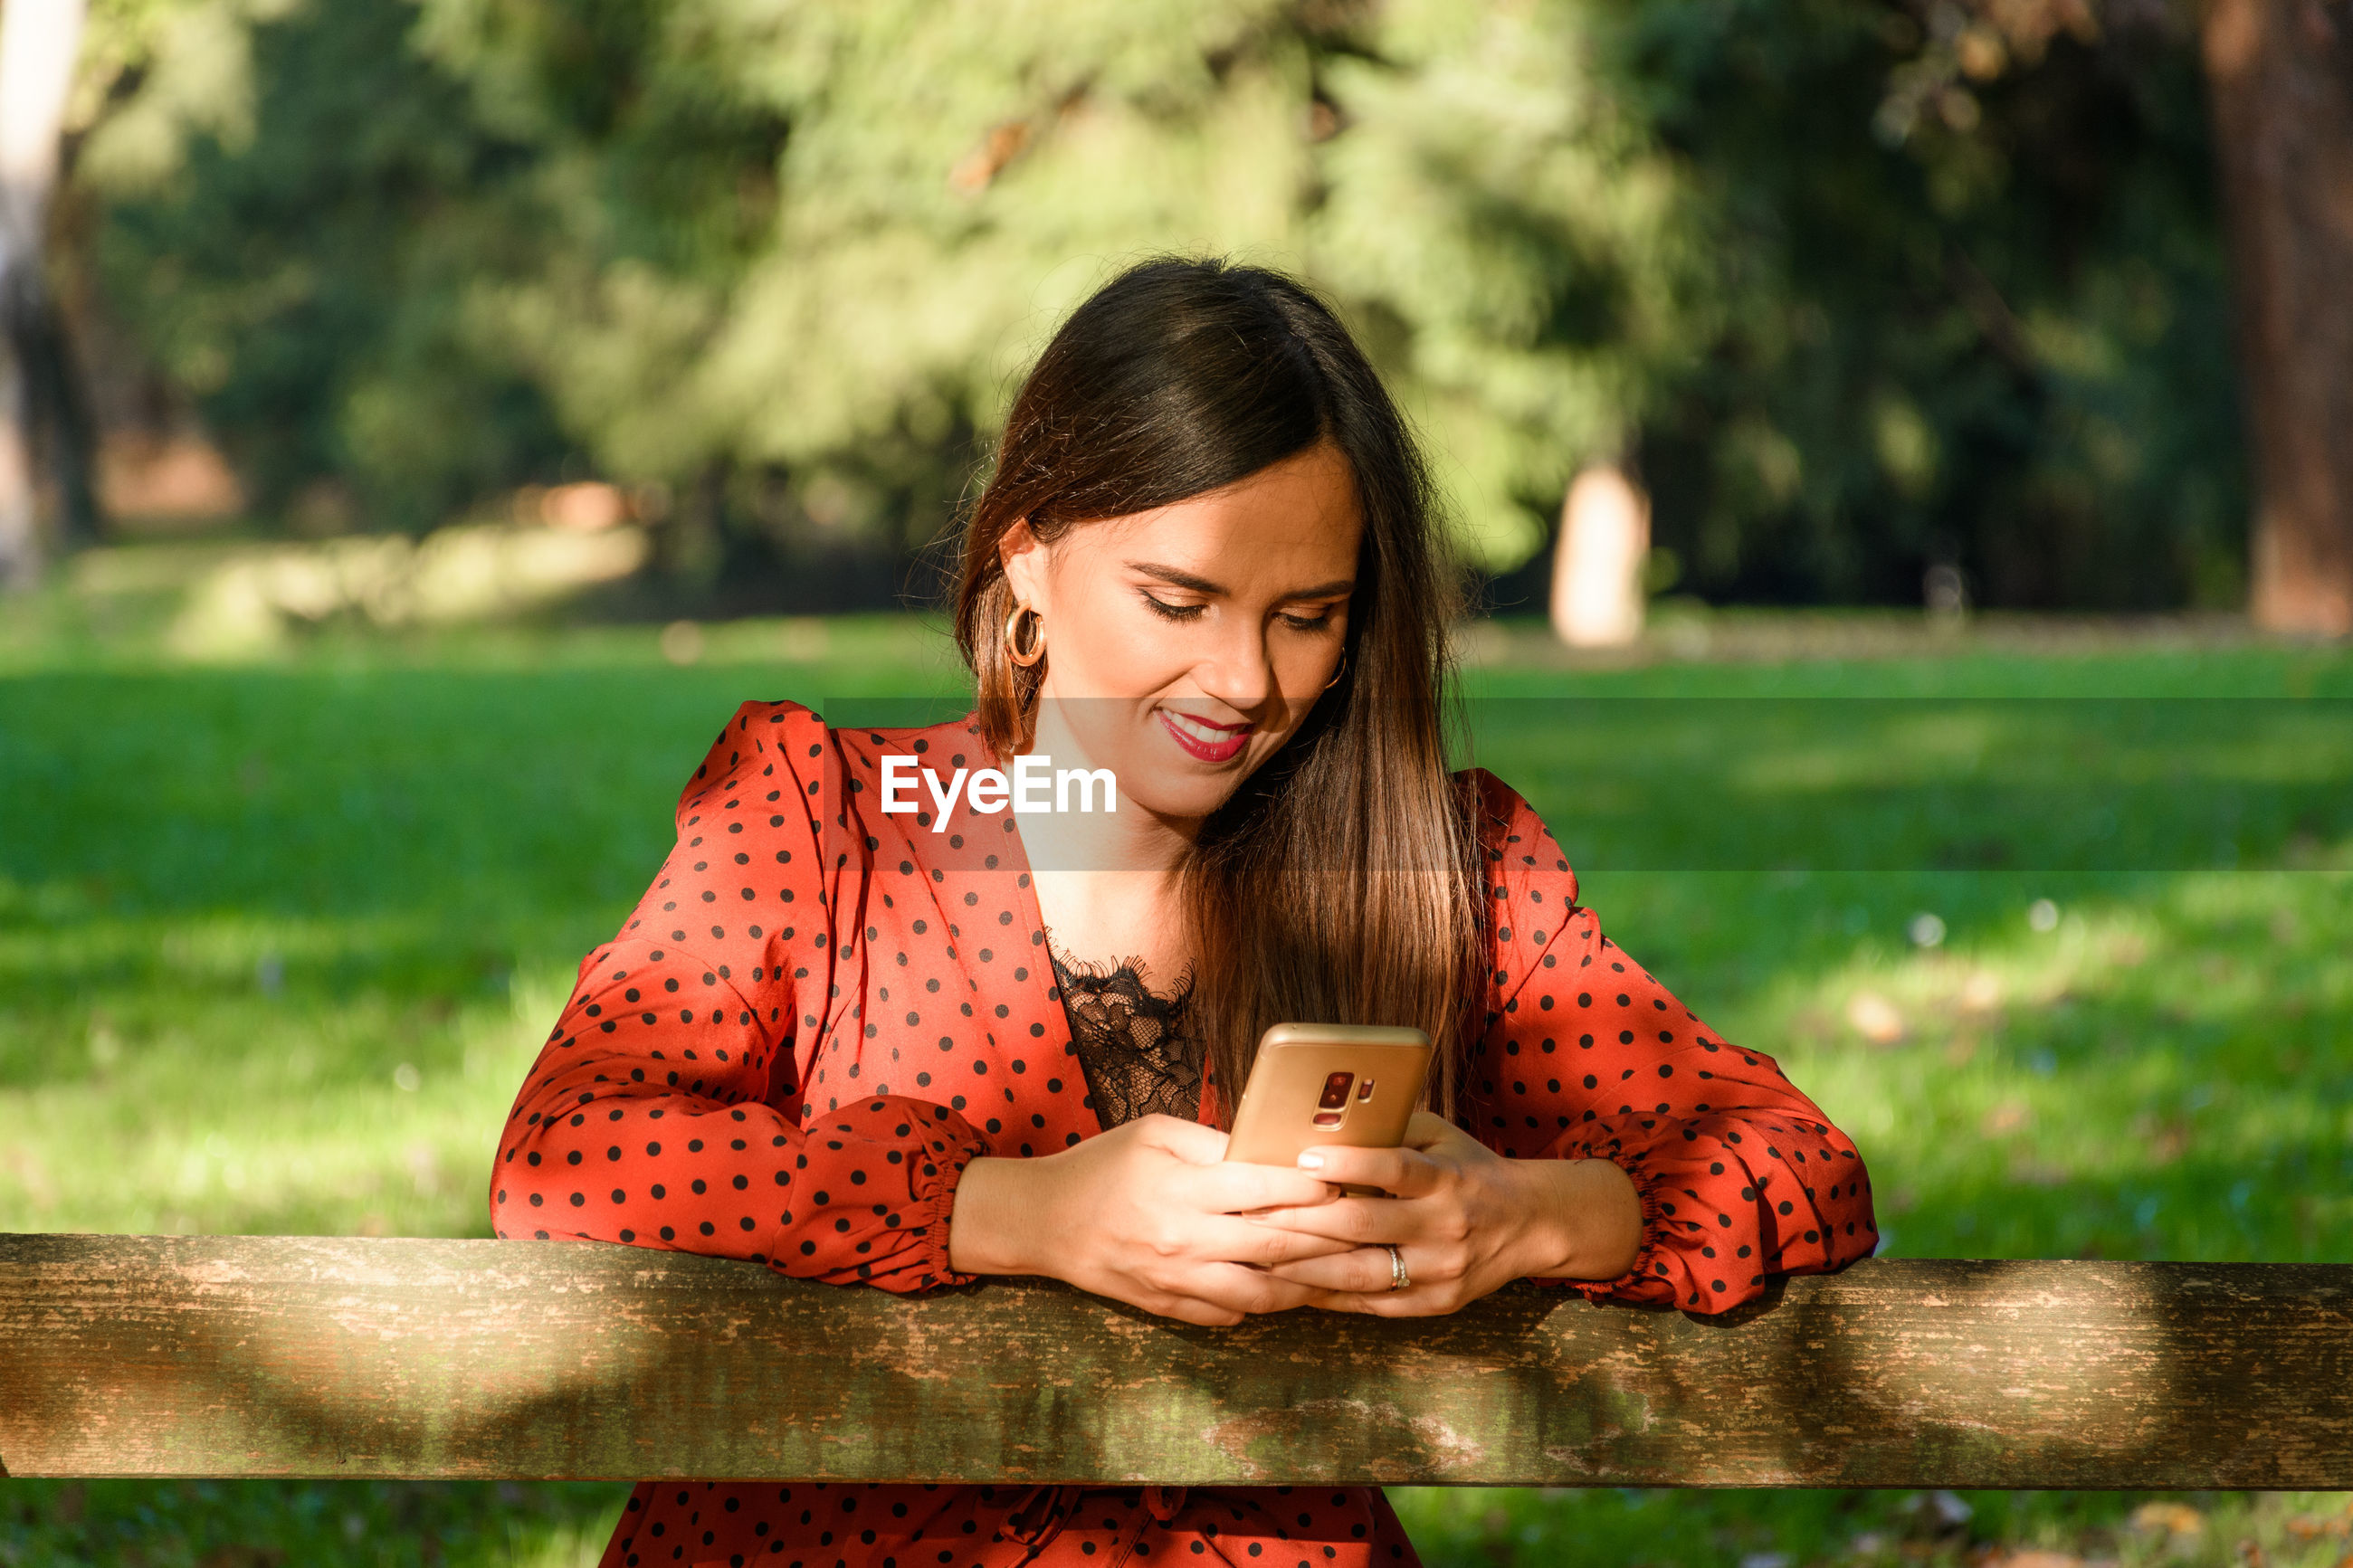 Happy smiling young woman using her mobile phone.